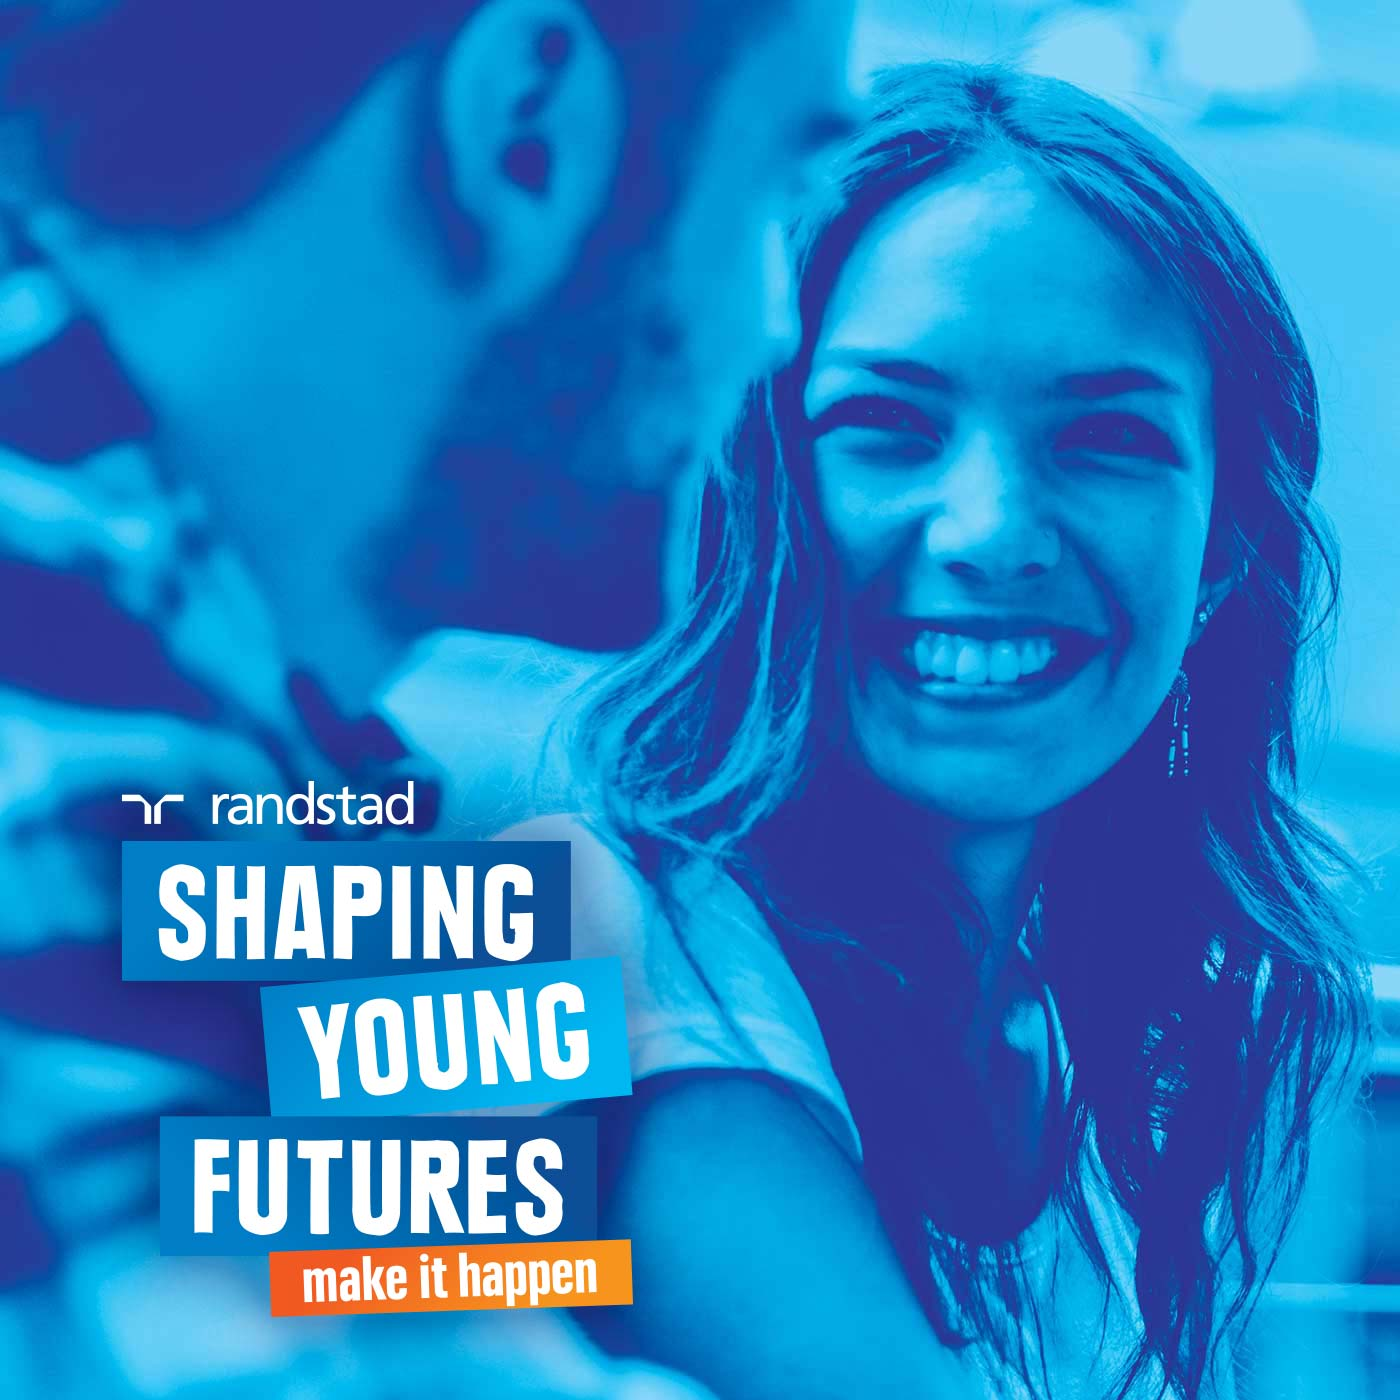 Randstad Shaping Young Futures branding tile